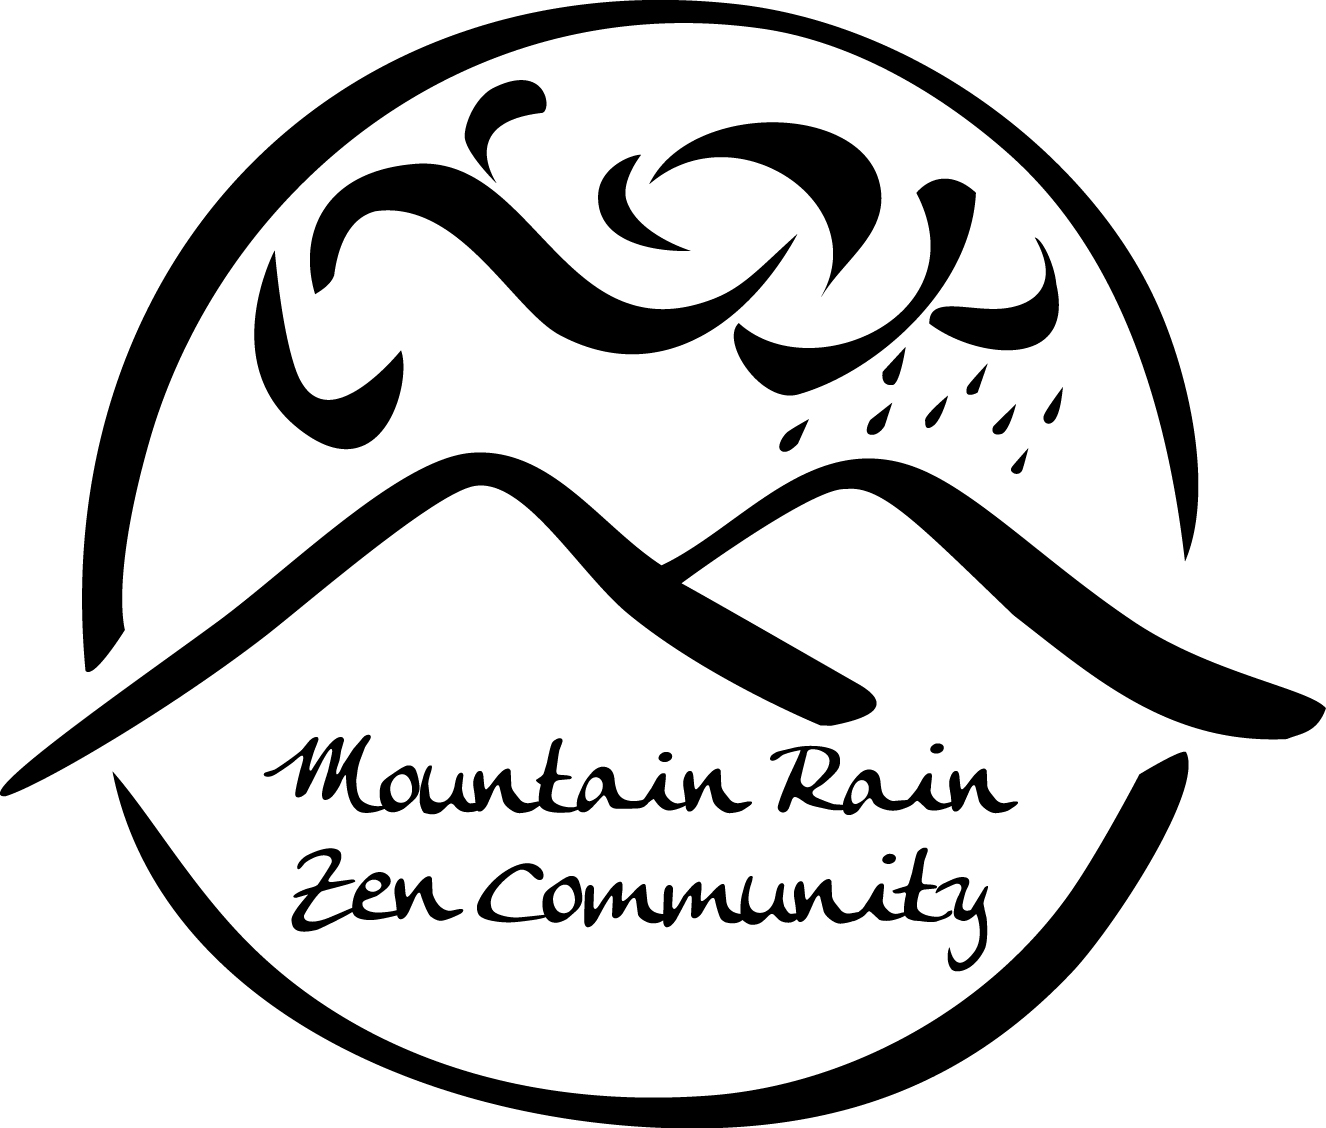 Mountain Rain Zen Community